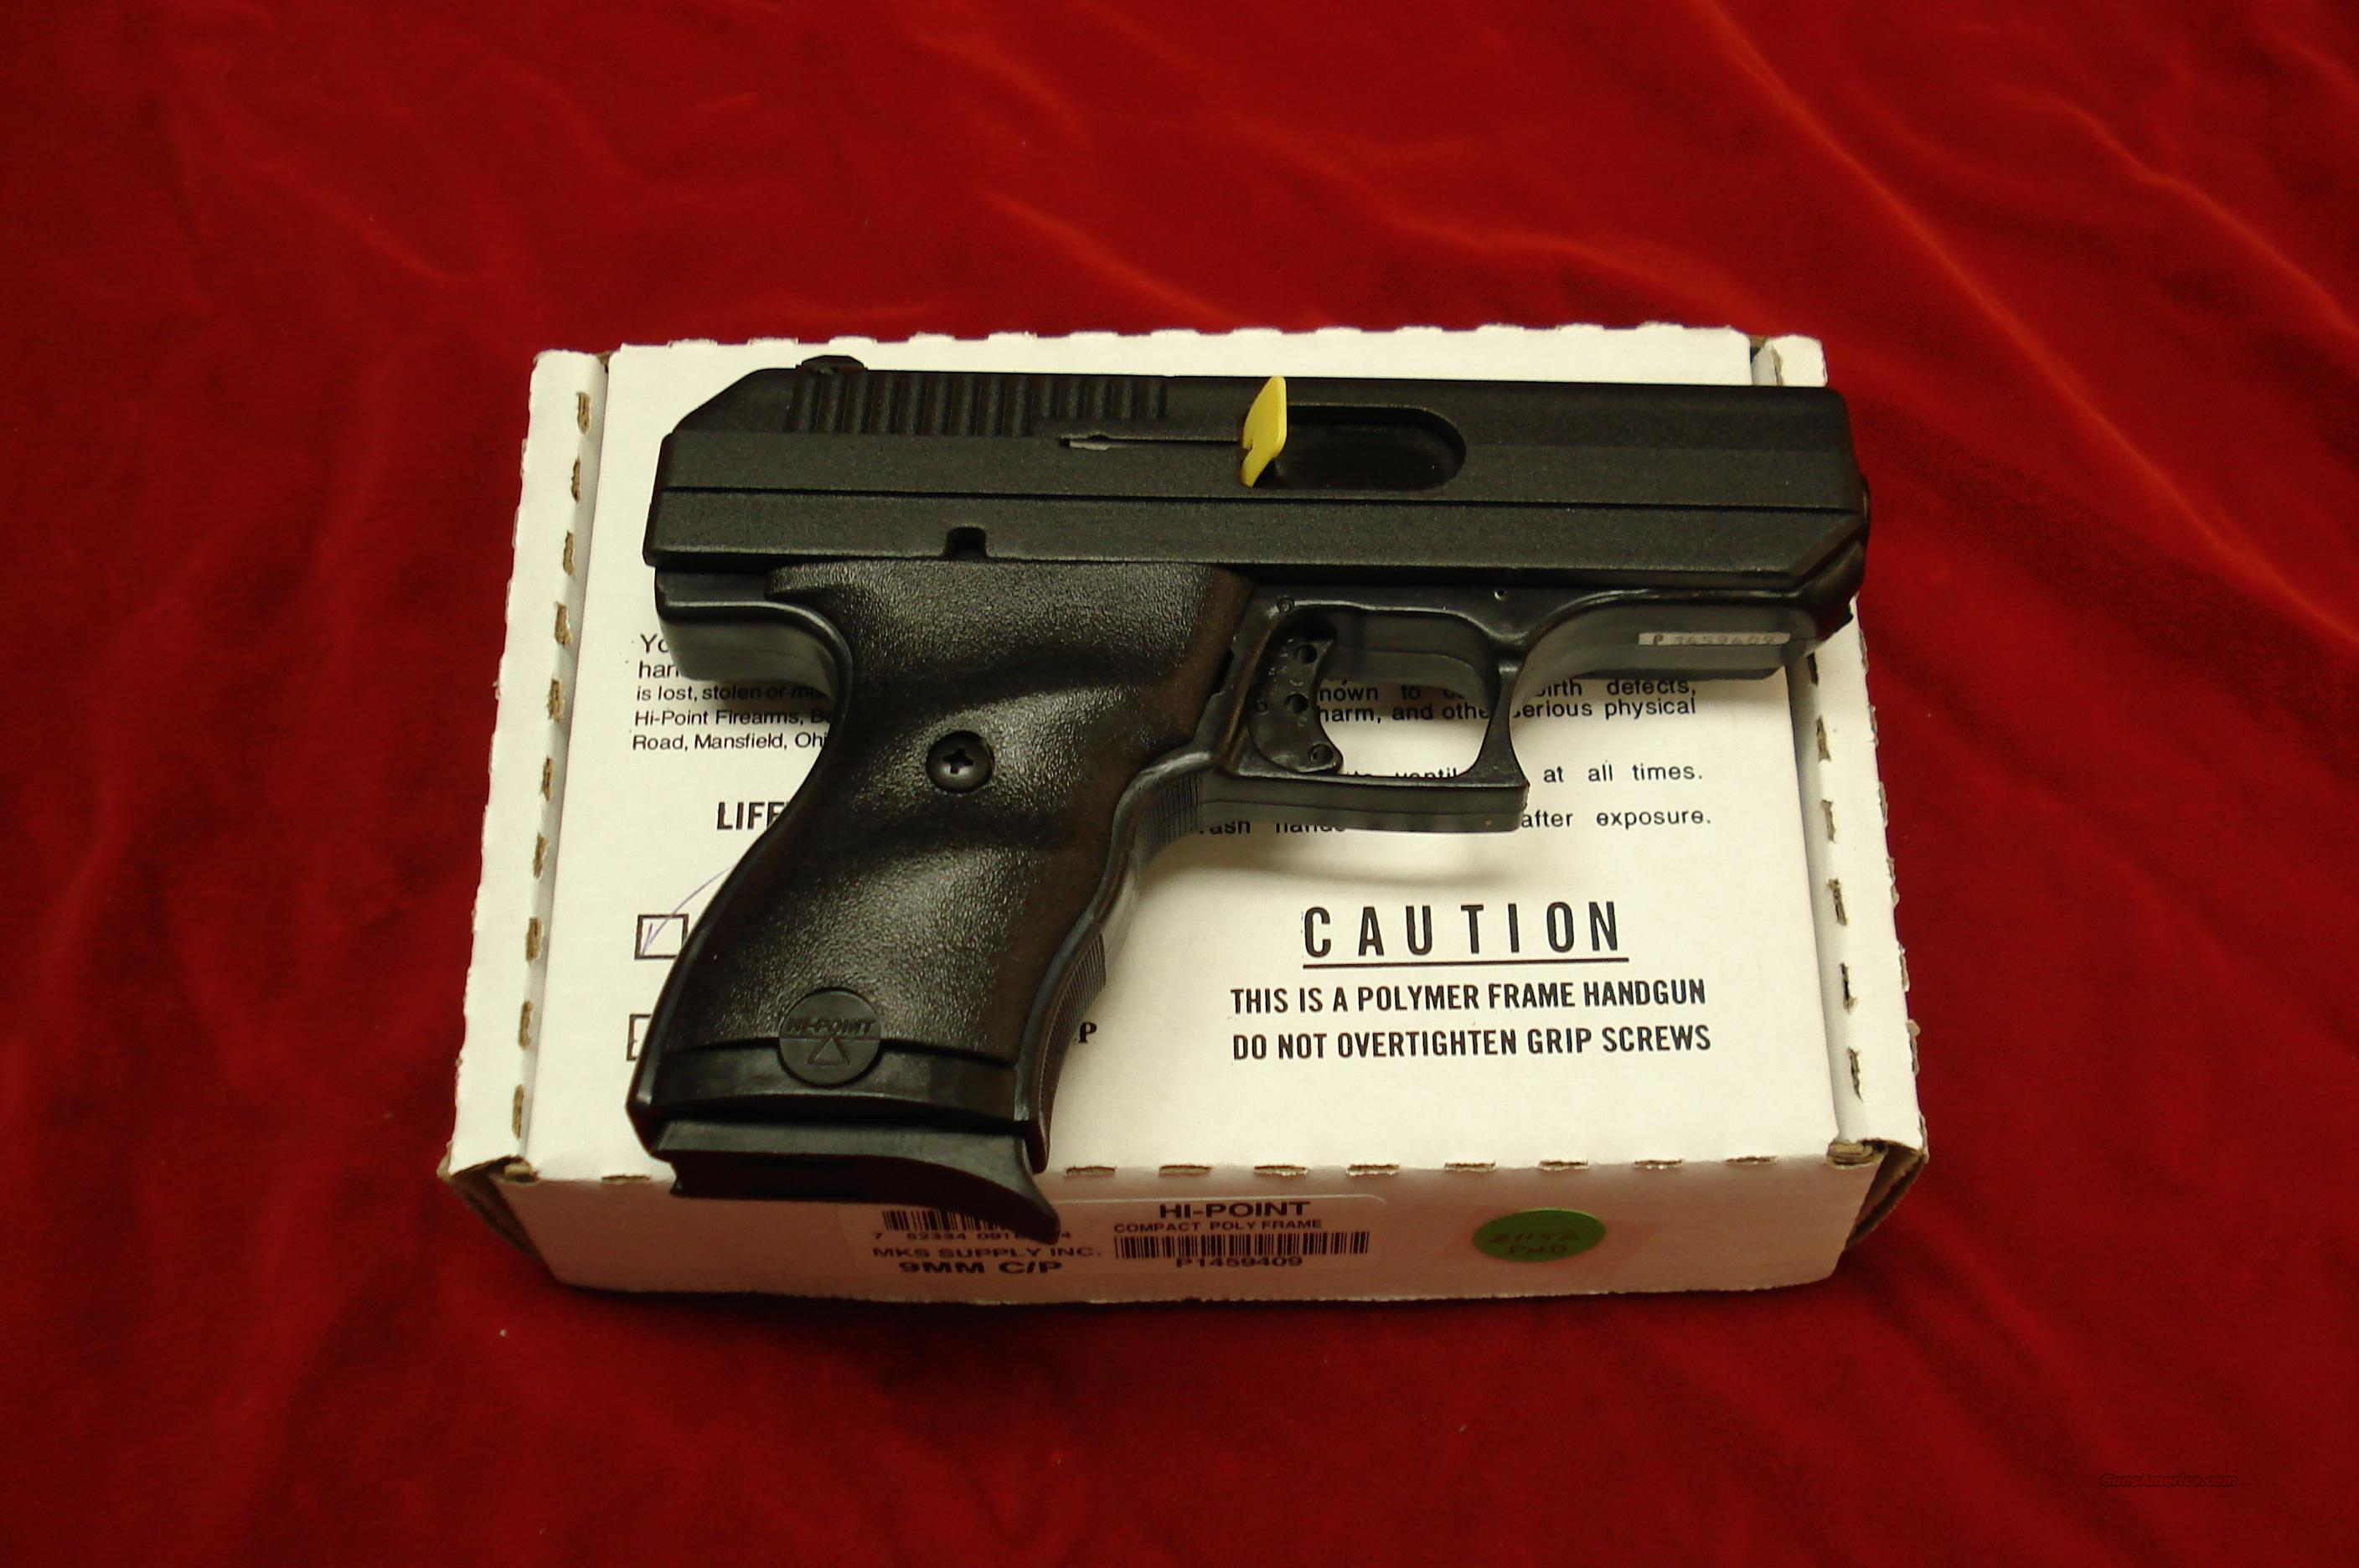 HI-POINT 9MM COMPACT NEW IN THE BOX  Guns > Pistols > Hi Point Pistols